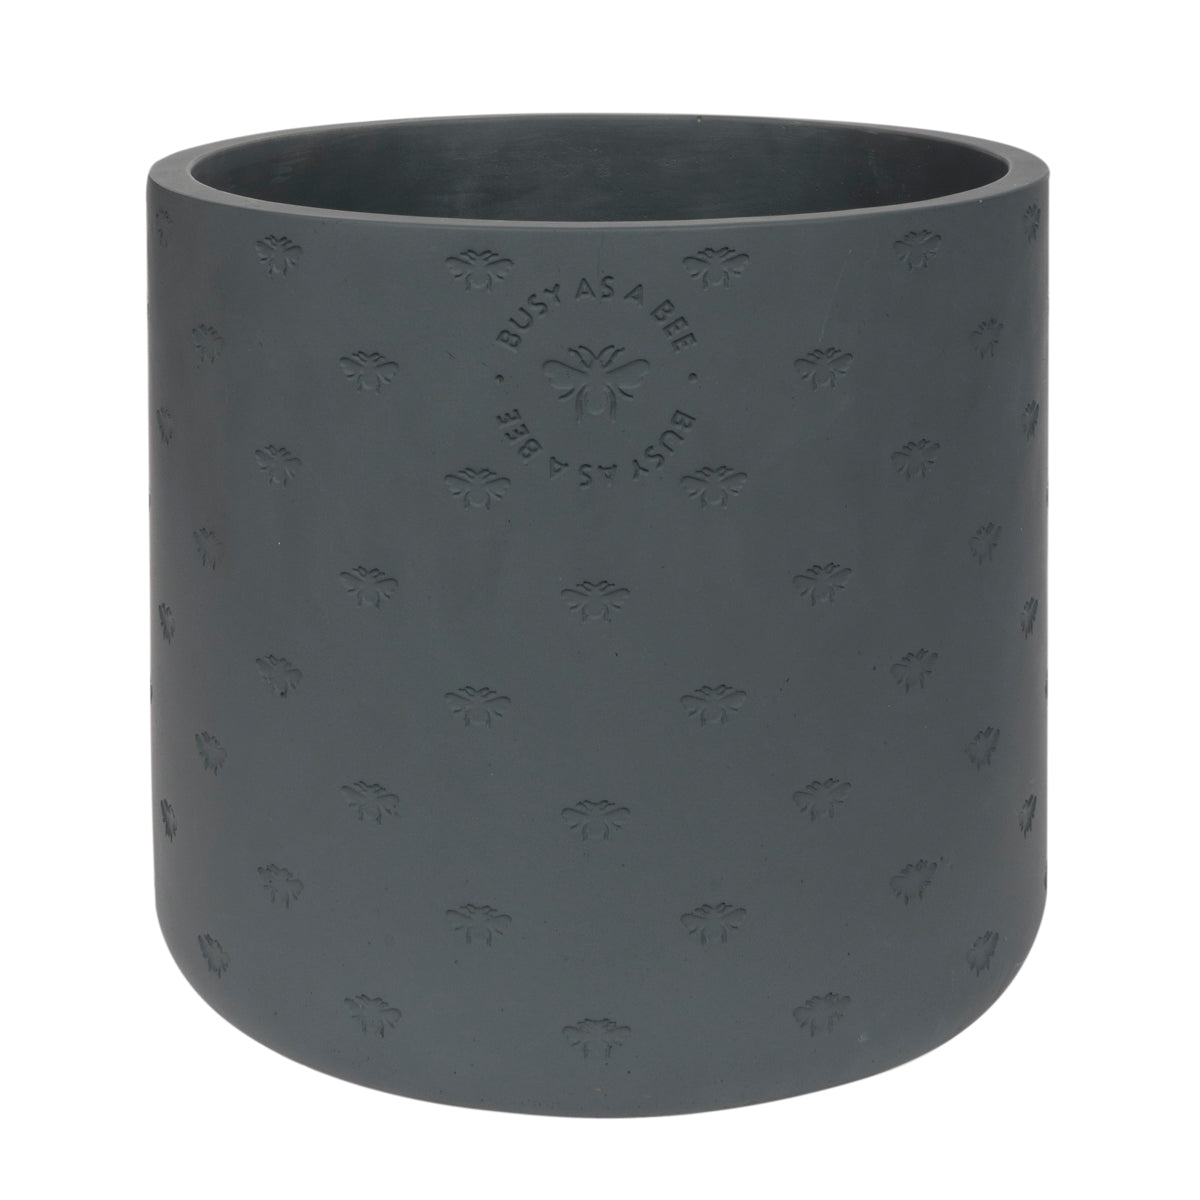 Large grey plant pot made from cement in Sophie Allport's popular bee design